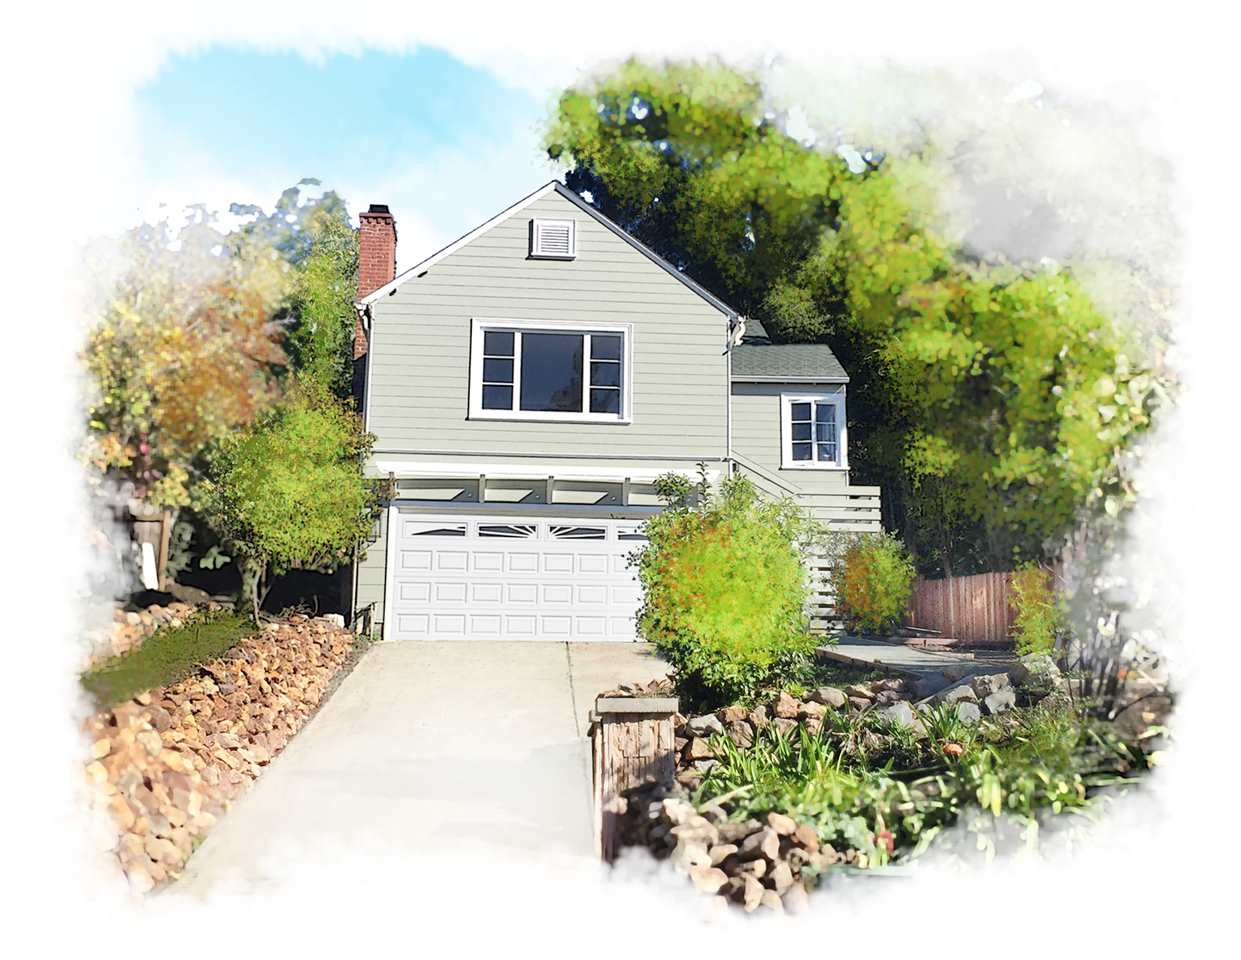 Single Family Home for Sale at 3300 Guido Street 3300 Guido Street Oakland, California 94602 United States